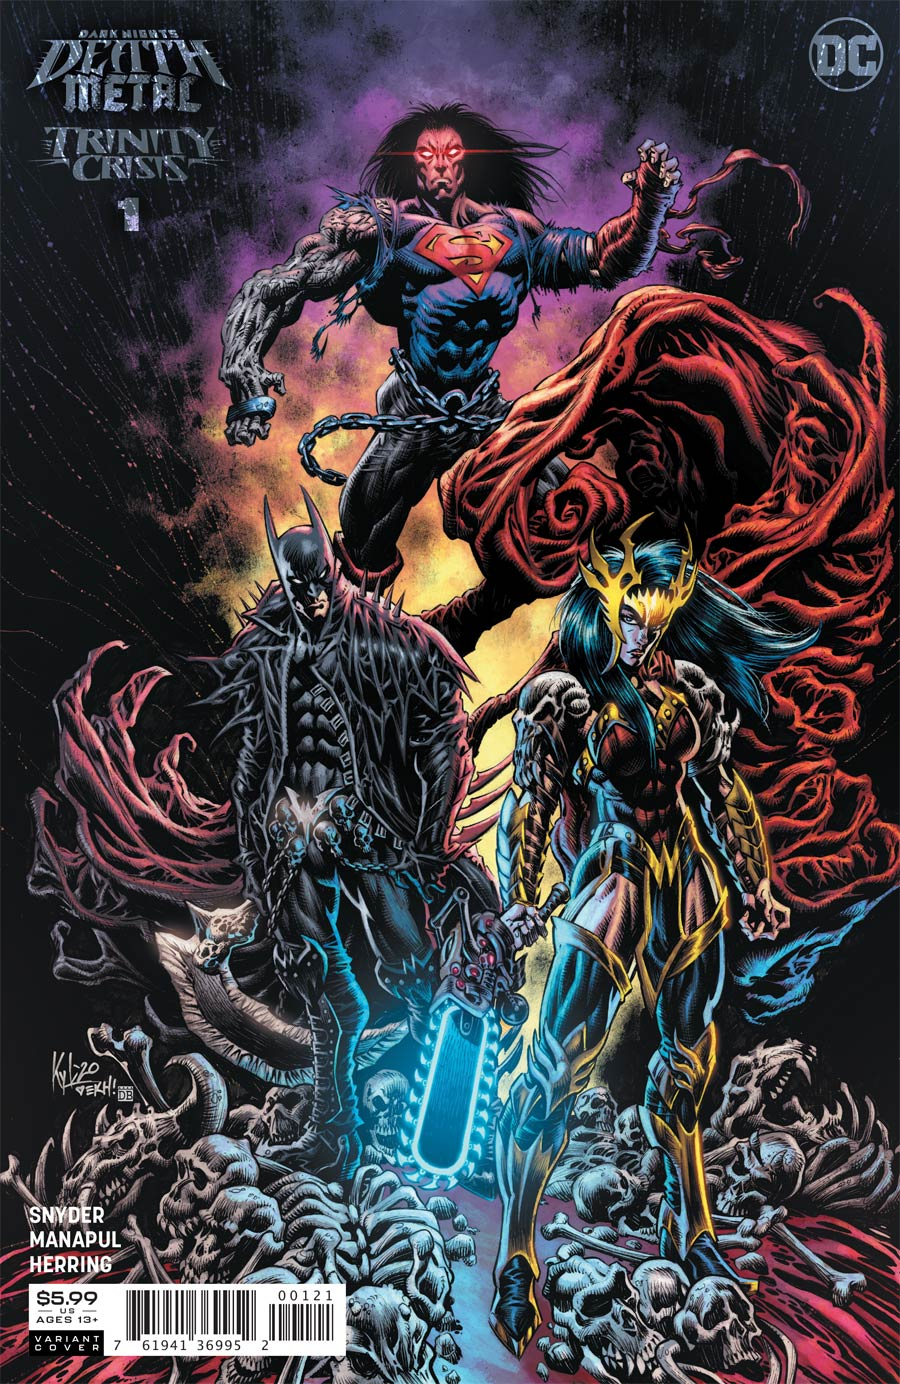 Dark Nights Death Metal Trinity Crisis One Shot Cover B Incentive Kyle Hotz Variant Cover